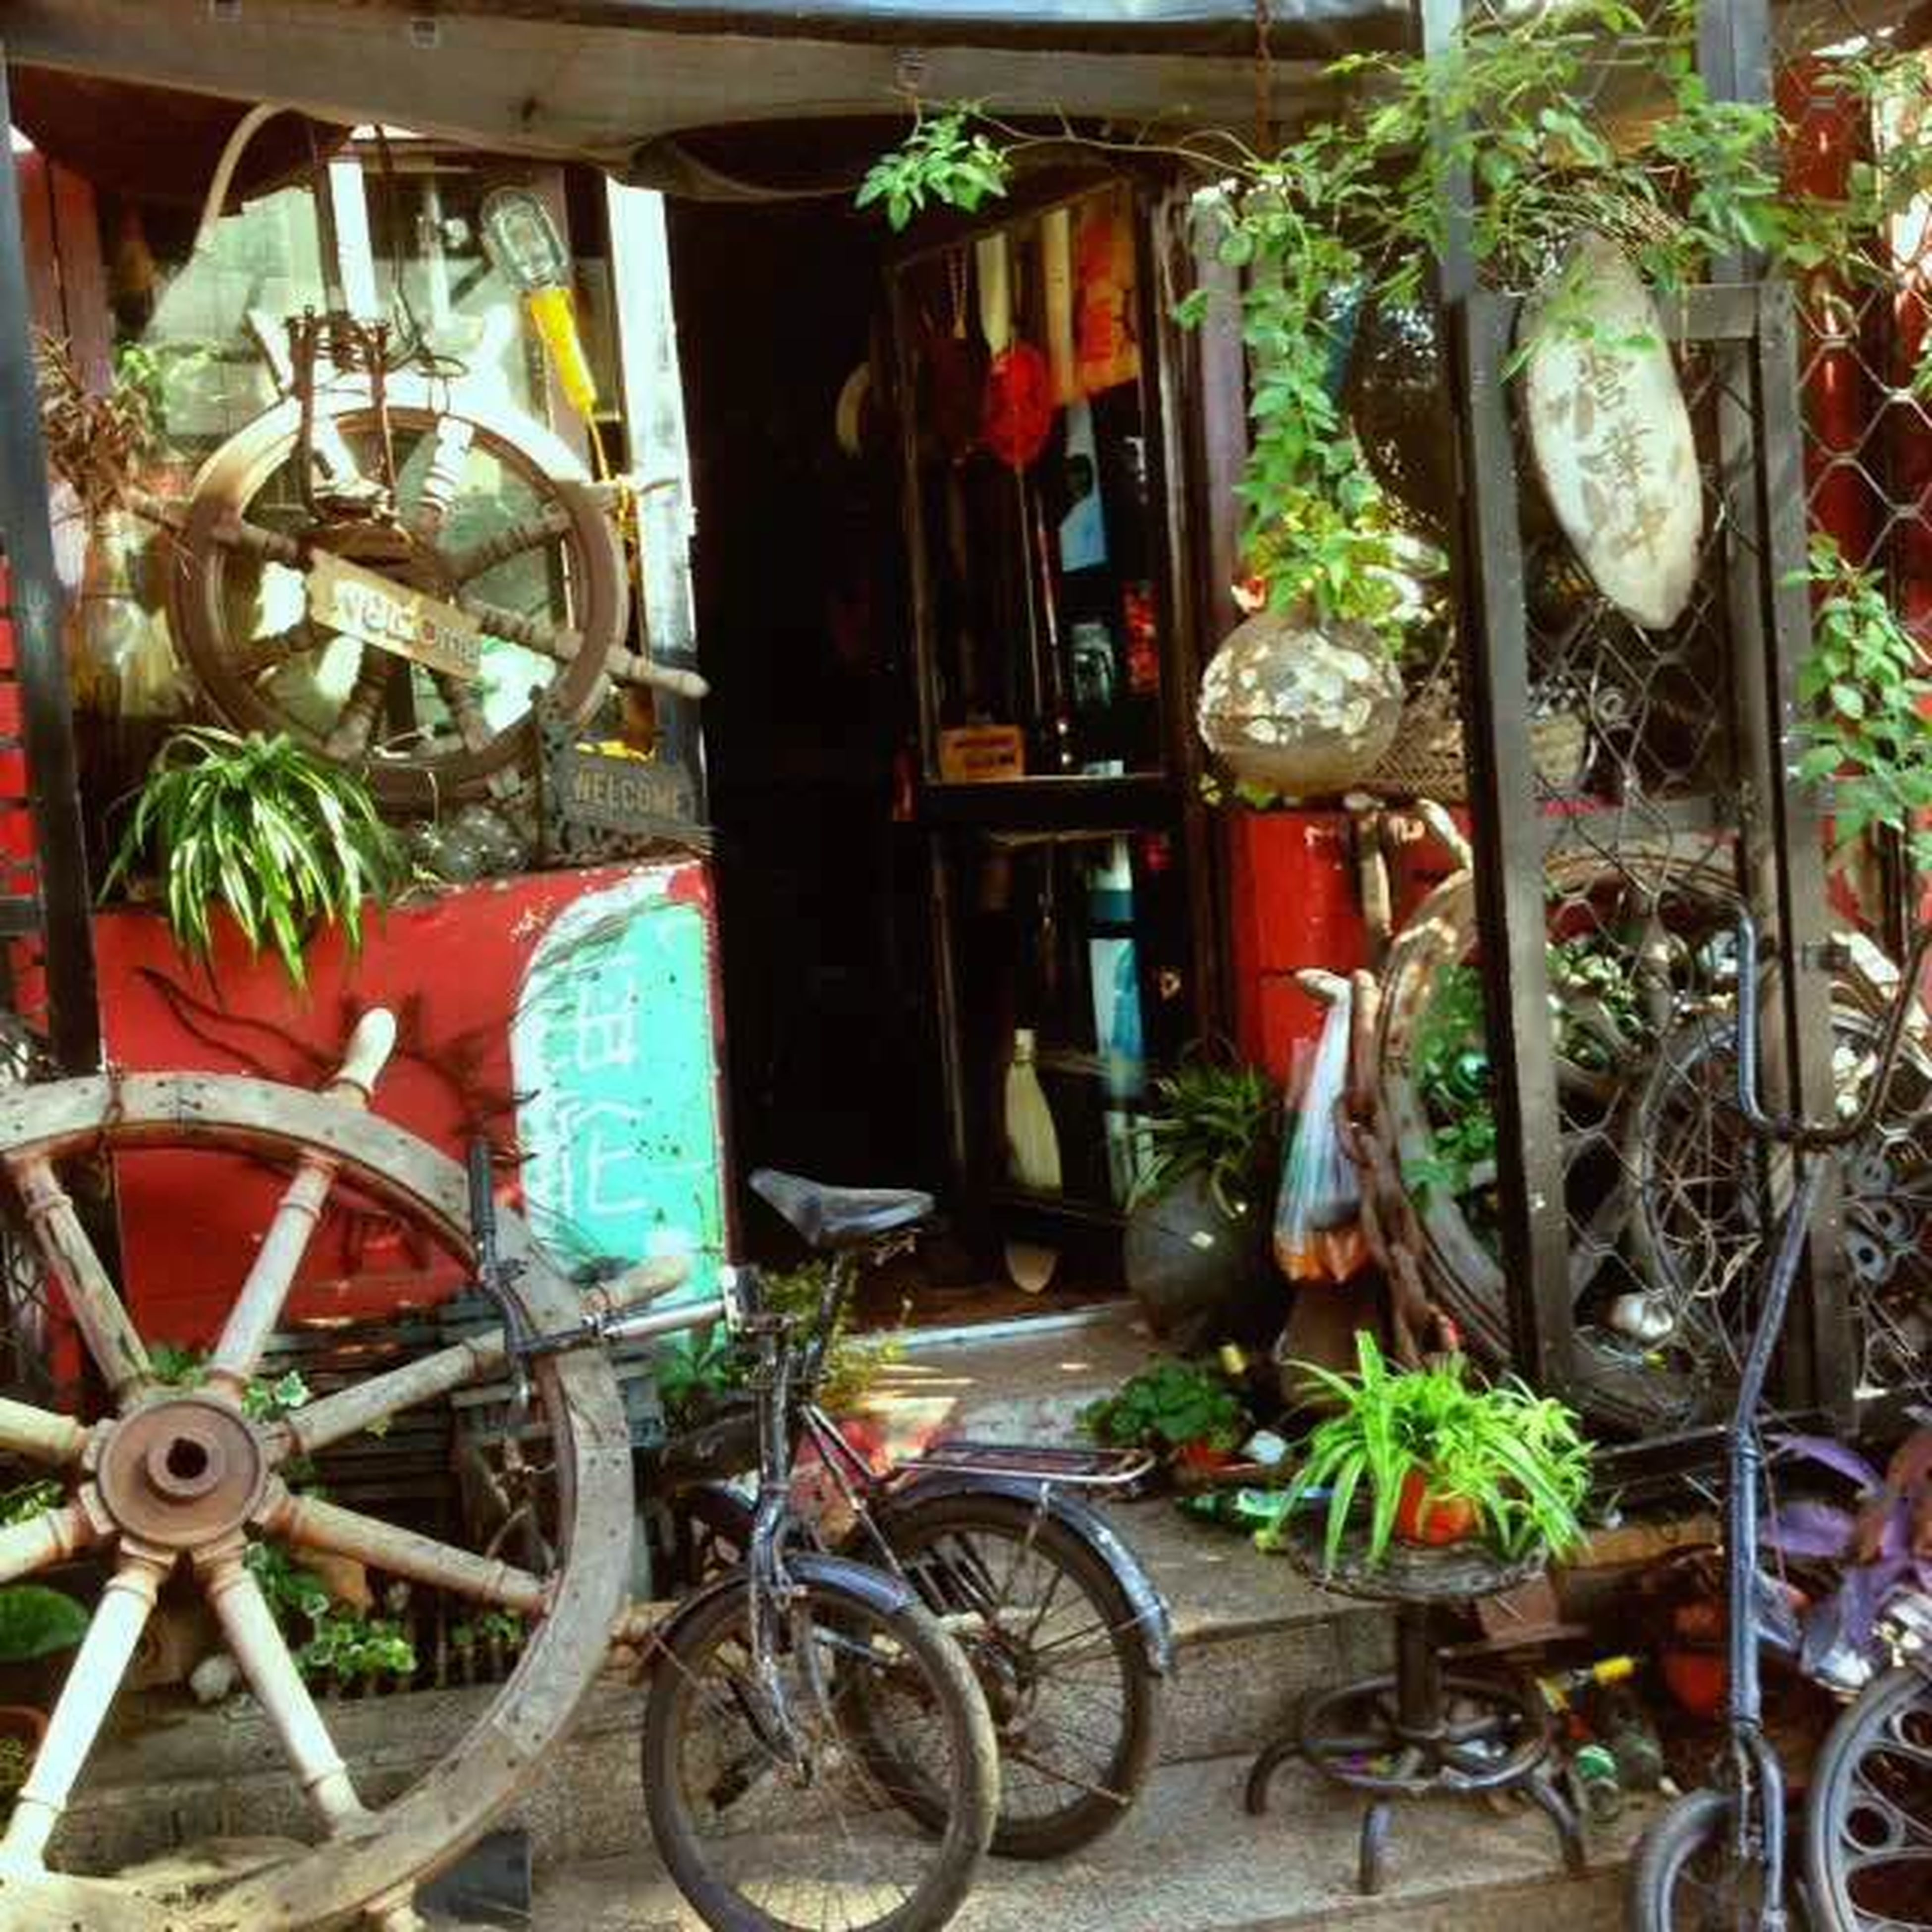 potted plant, bicycle, indoors, variation, house, built structure, plant, architecture, chair, no people, stationary, building exterior, land vehicle, table, day, large group of objects, choice, flower pot, parked, retail